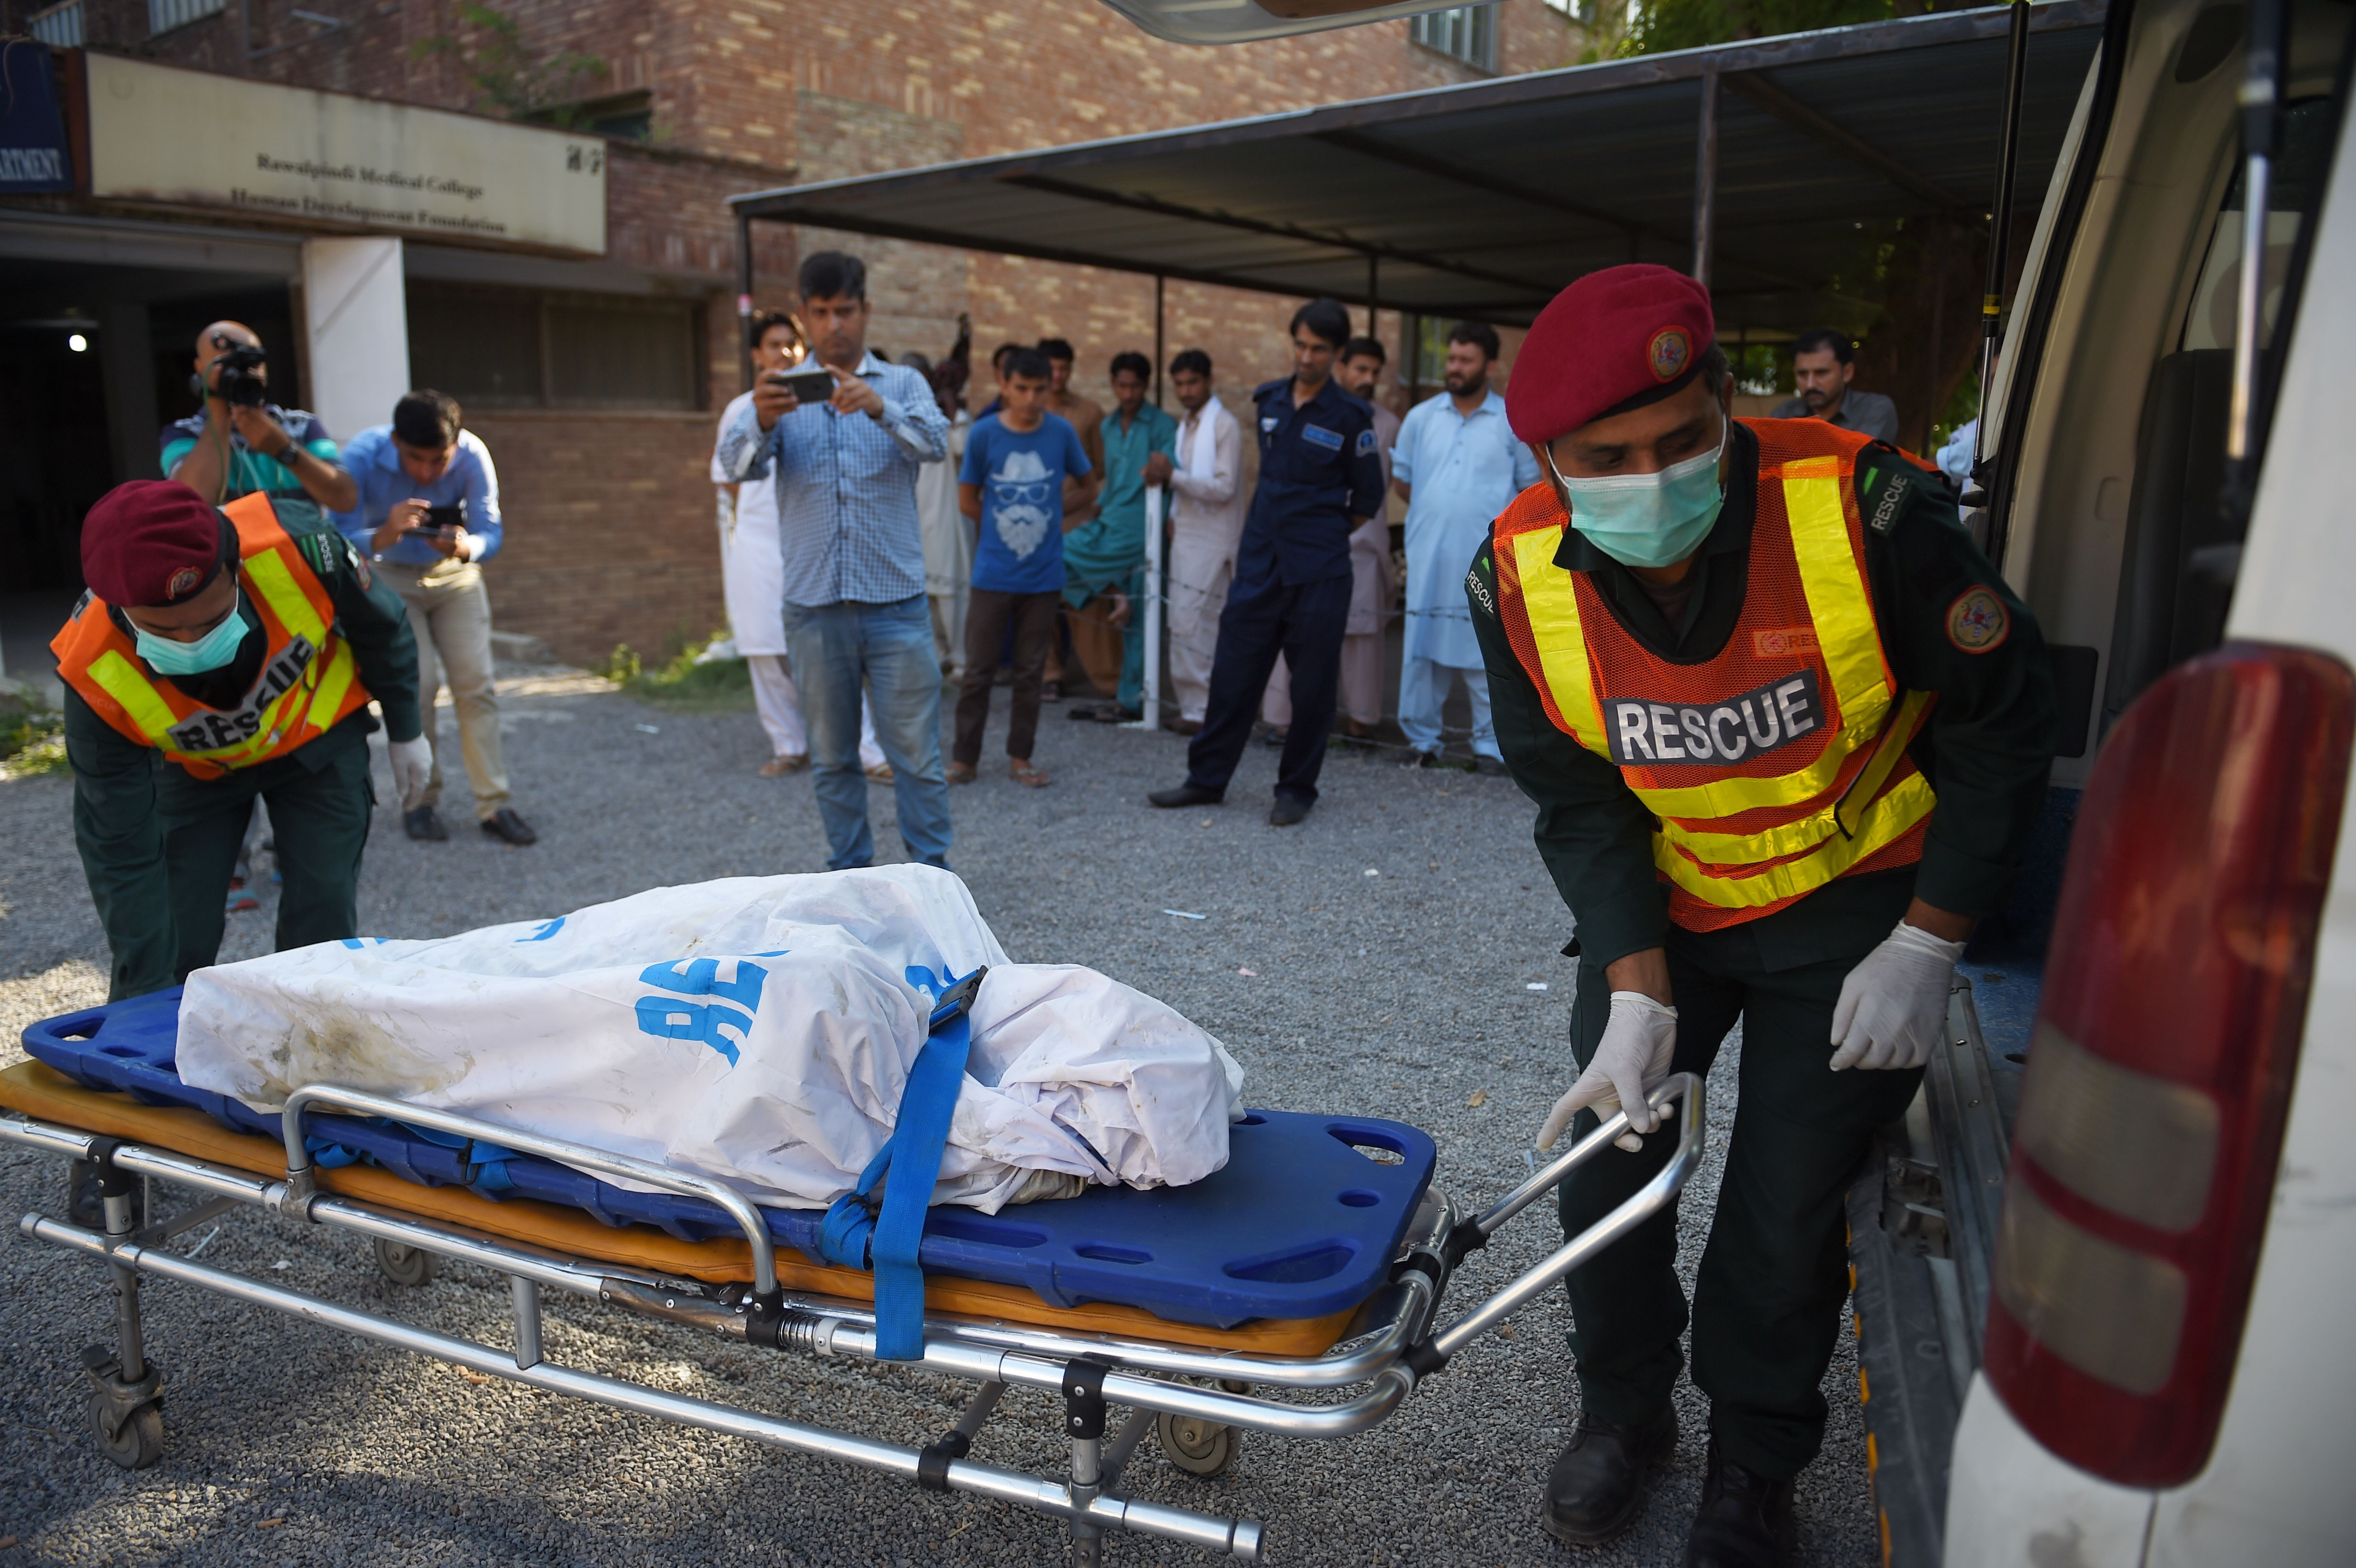 The body of a victim, killed after a Pakistani Army Aviation Corps aircraft crashed into a residential area, is wheeled to a waiting ambulance at a hospital to be taken for DNA identification in Rawalpindi on July 30, 2019 (Pic credit: FAROOQ NAEEM/AFP/Getty Images)